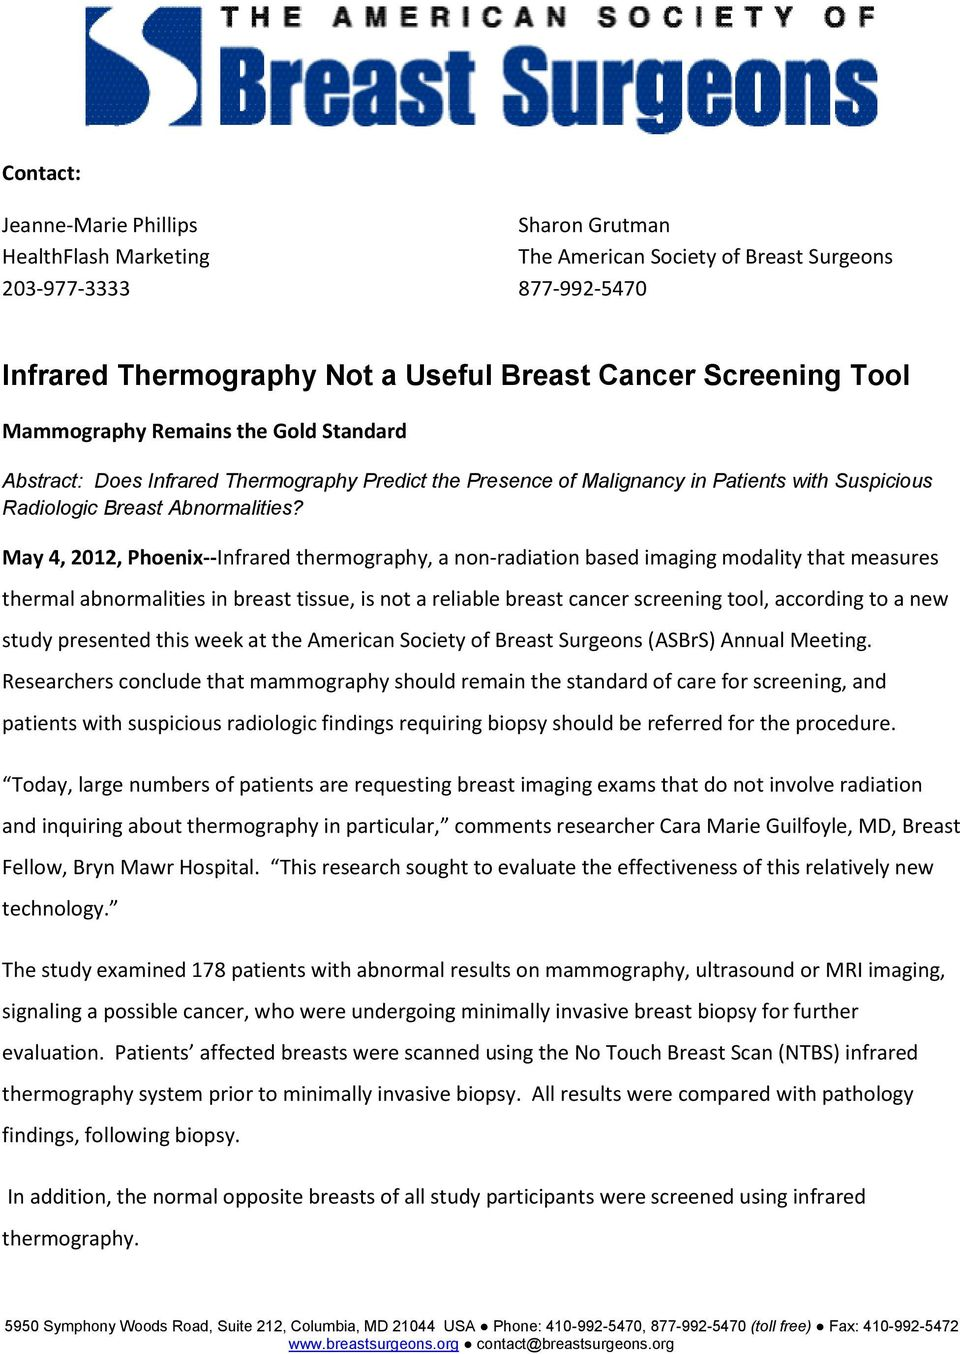 May 4, 2012, Phoenix--Infrared thermography, a non-radiation based imaging modality that measures thermal abnormalities in breast tissue, is not a reliable breast cancer screening tool, according to